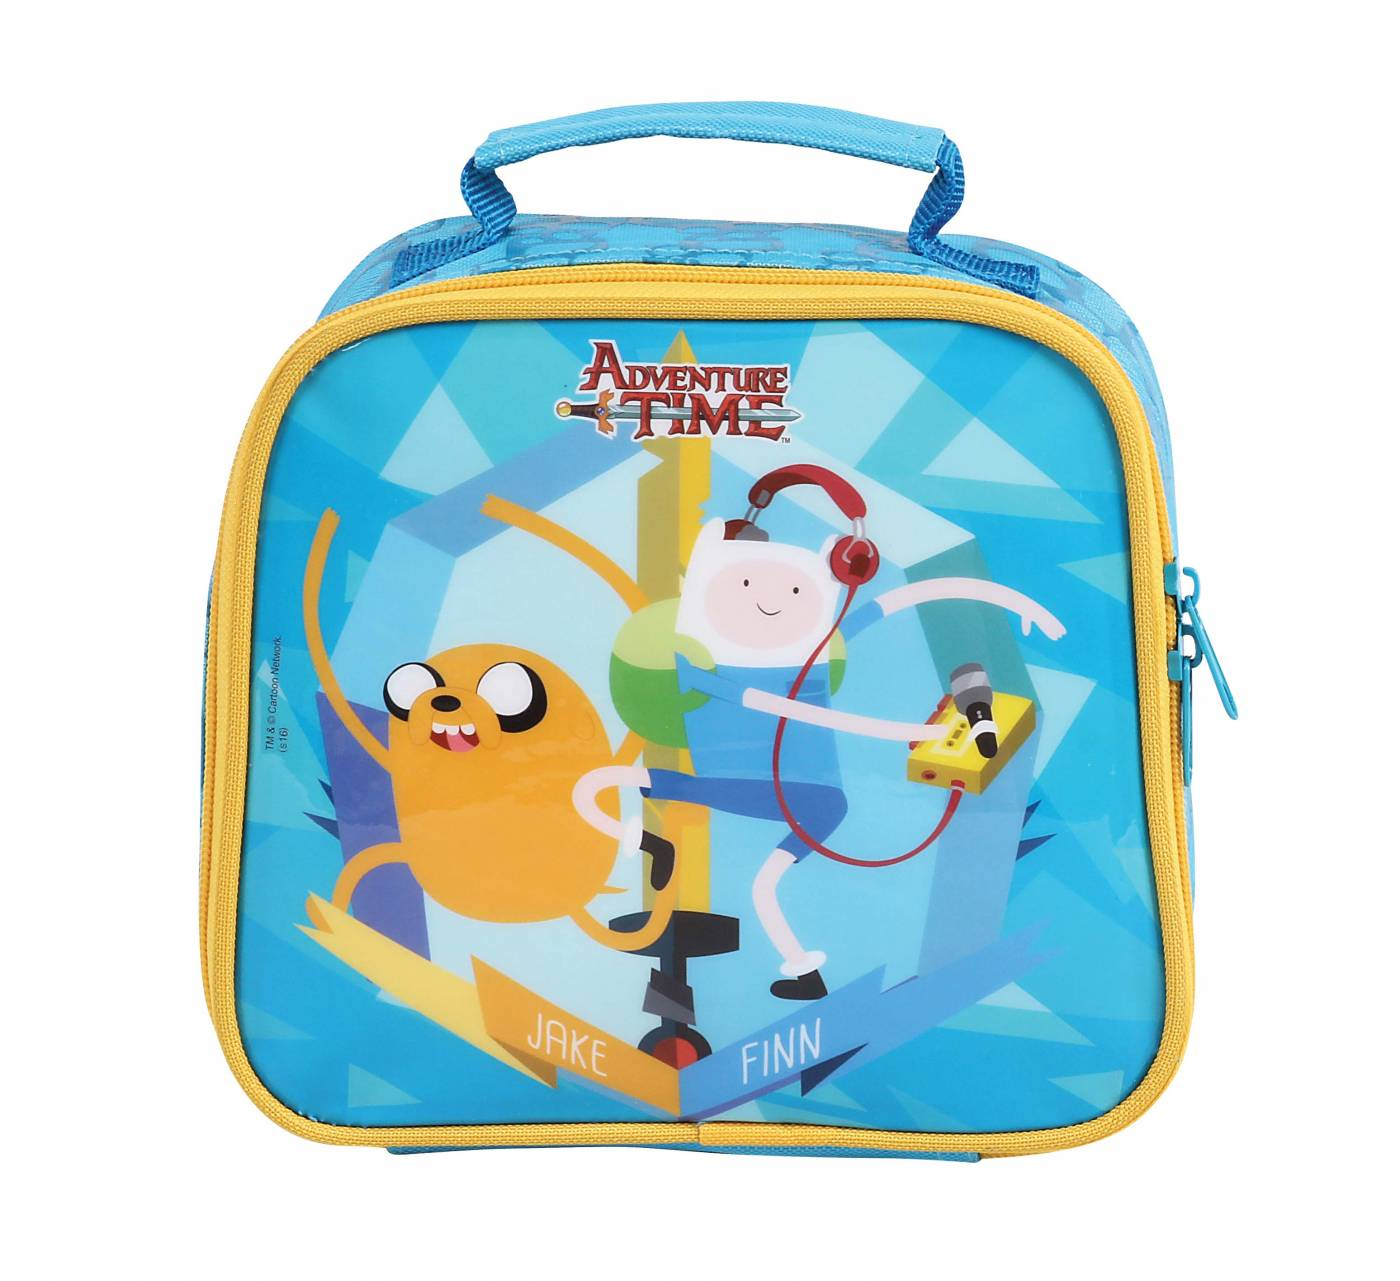 Lancheira Térmica DMW Adventure Time 49026